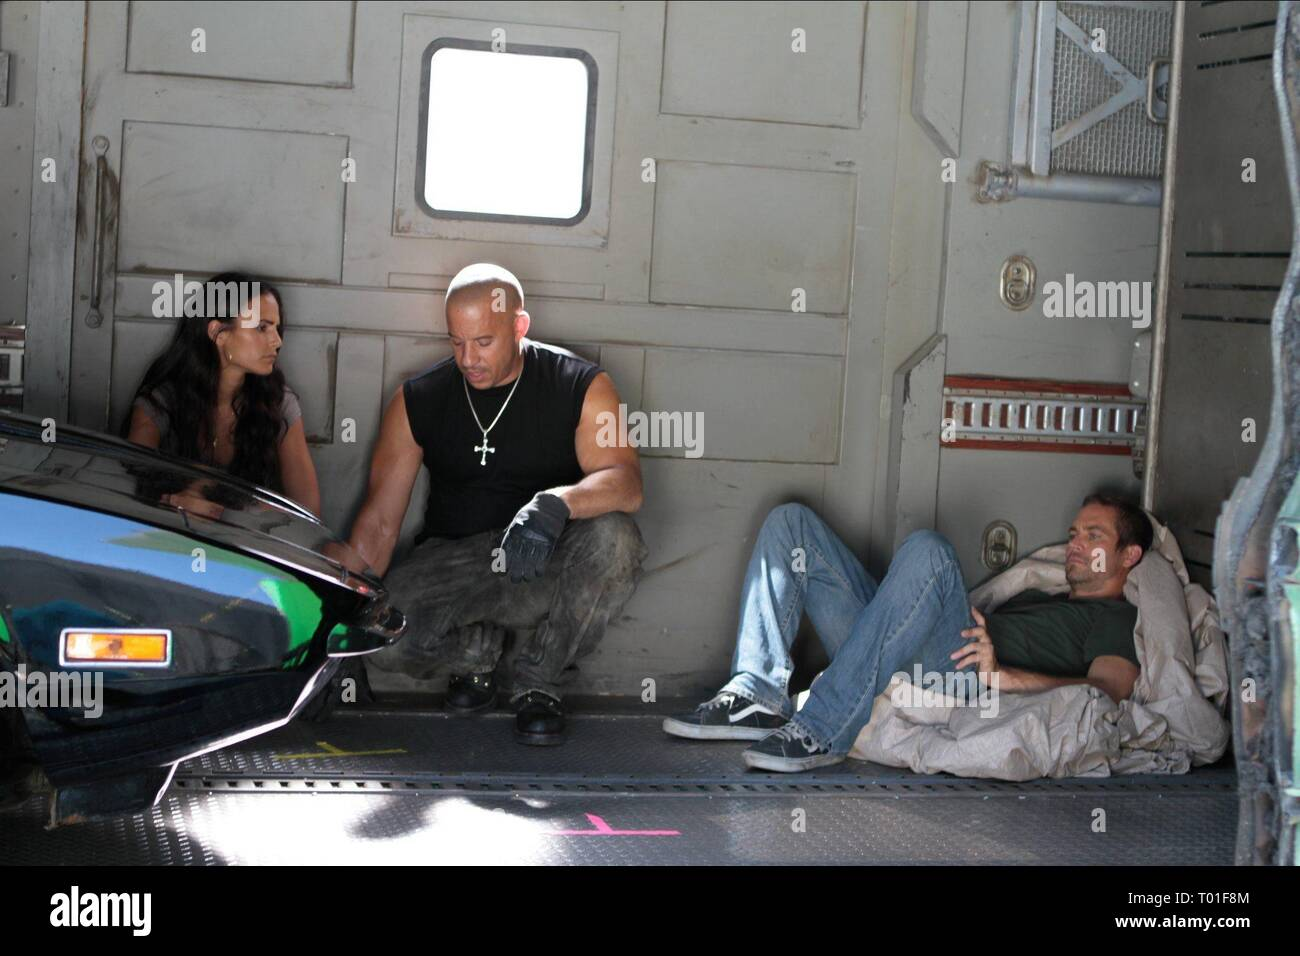 JORDANA BREWSTER, VIN DIESEL, PAUL WALKER, FAST FIVE, 2011 Stock Photo